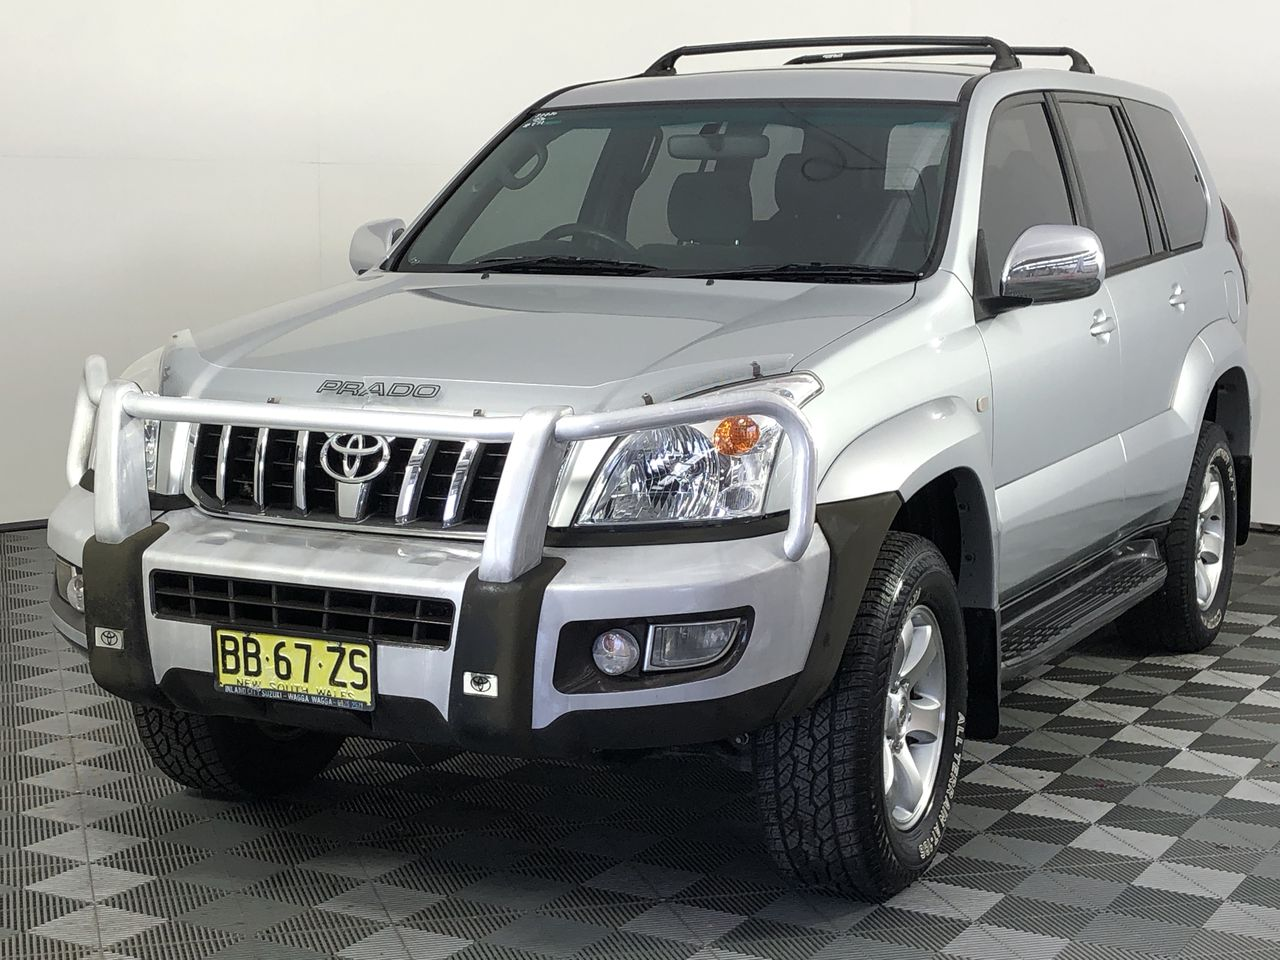 2003 Toyota Landcruiser Prado GXL (4x4) Turbo Diesel Manual 8 Seats